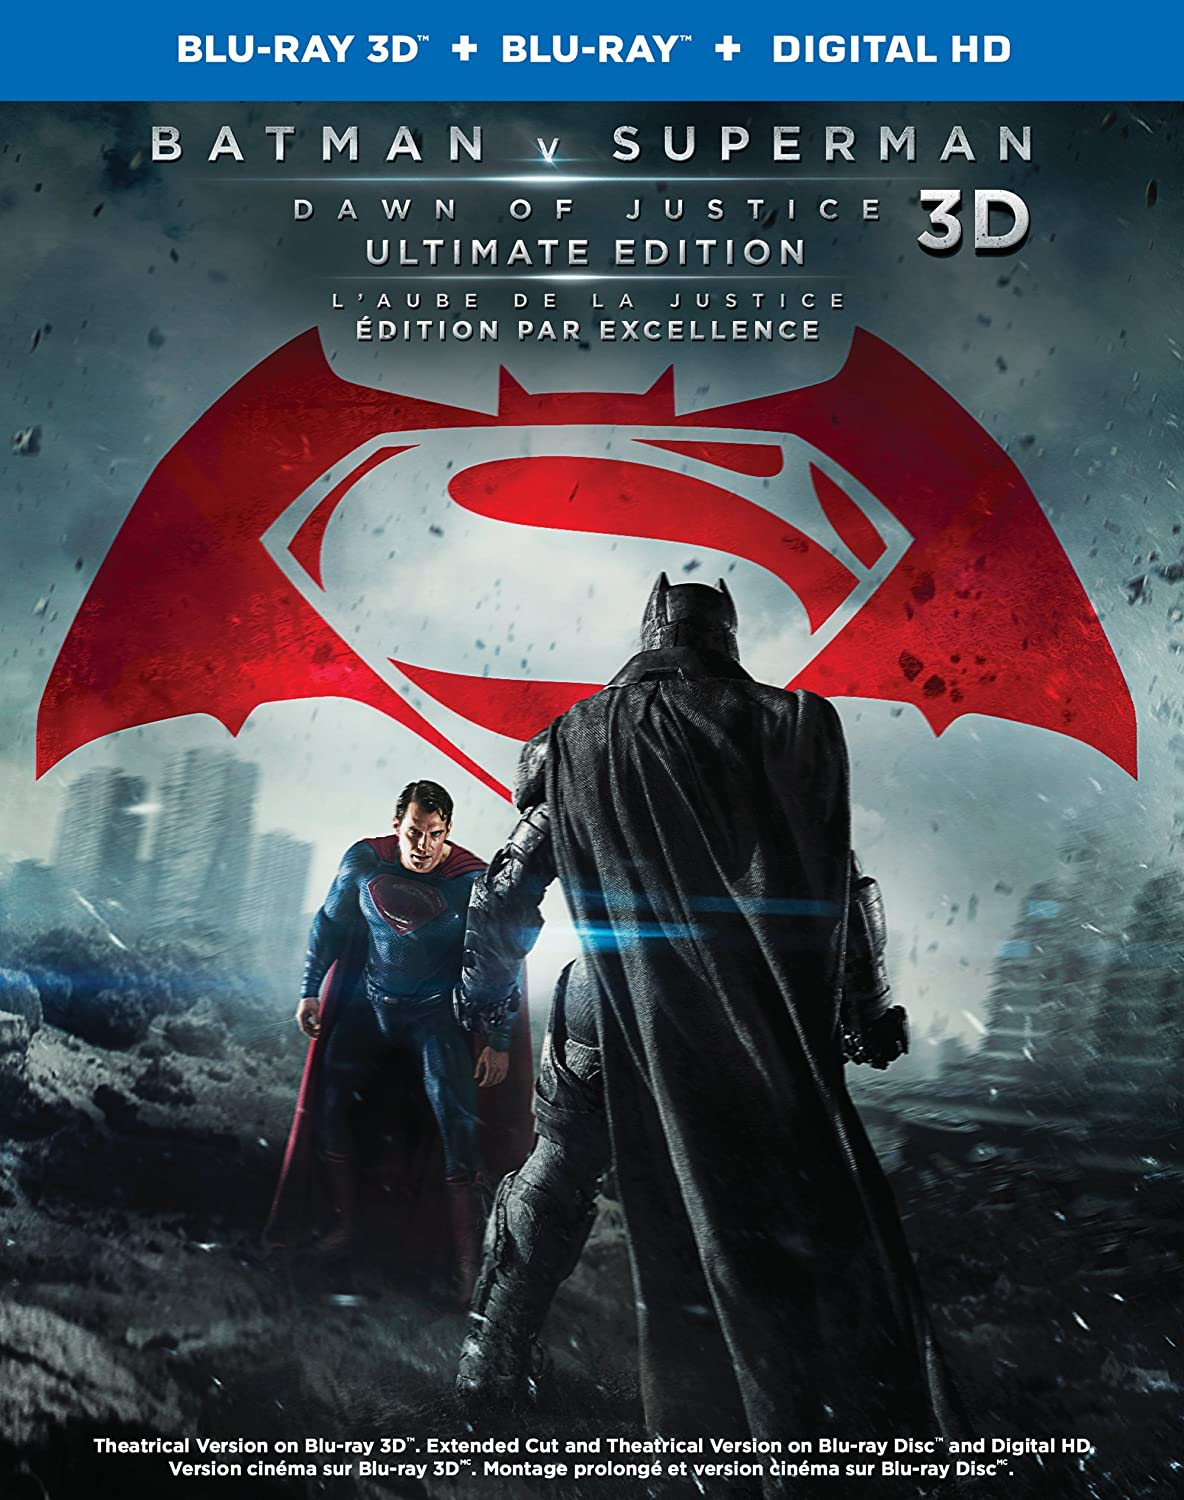 Batman v Superman: Dawn of Justice [3D Blu-ray + Blu-ray + Digital Copy] (Bilingual) Ultimate Edition (Extended Cut) Chris Terrio David S. Goyer Charles Roven Wesley Coller